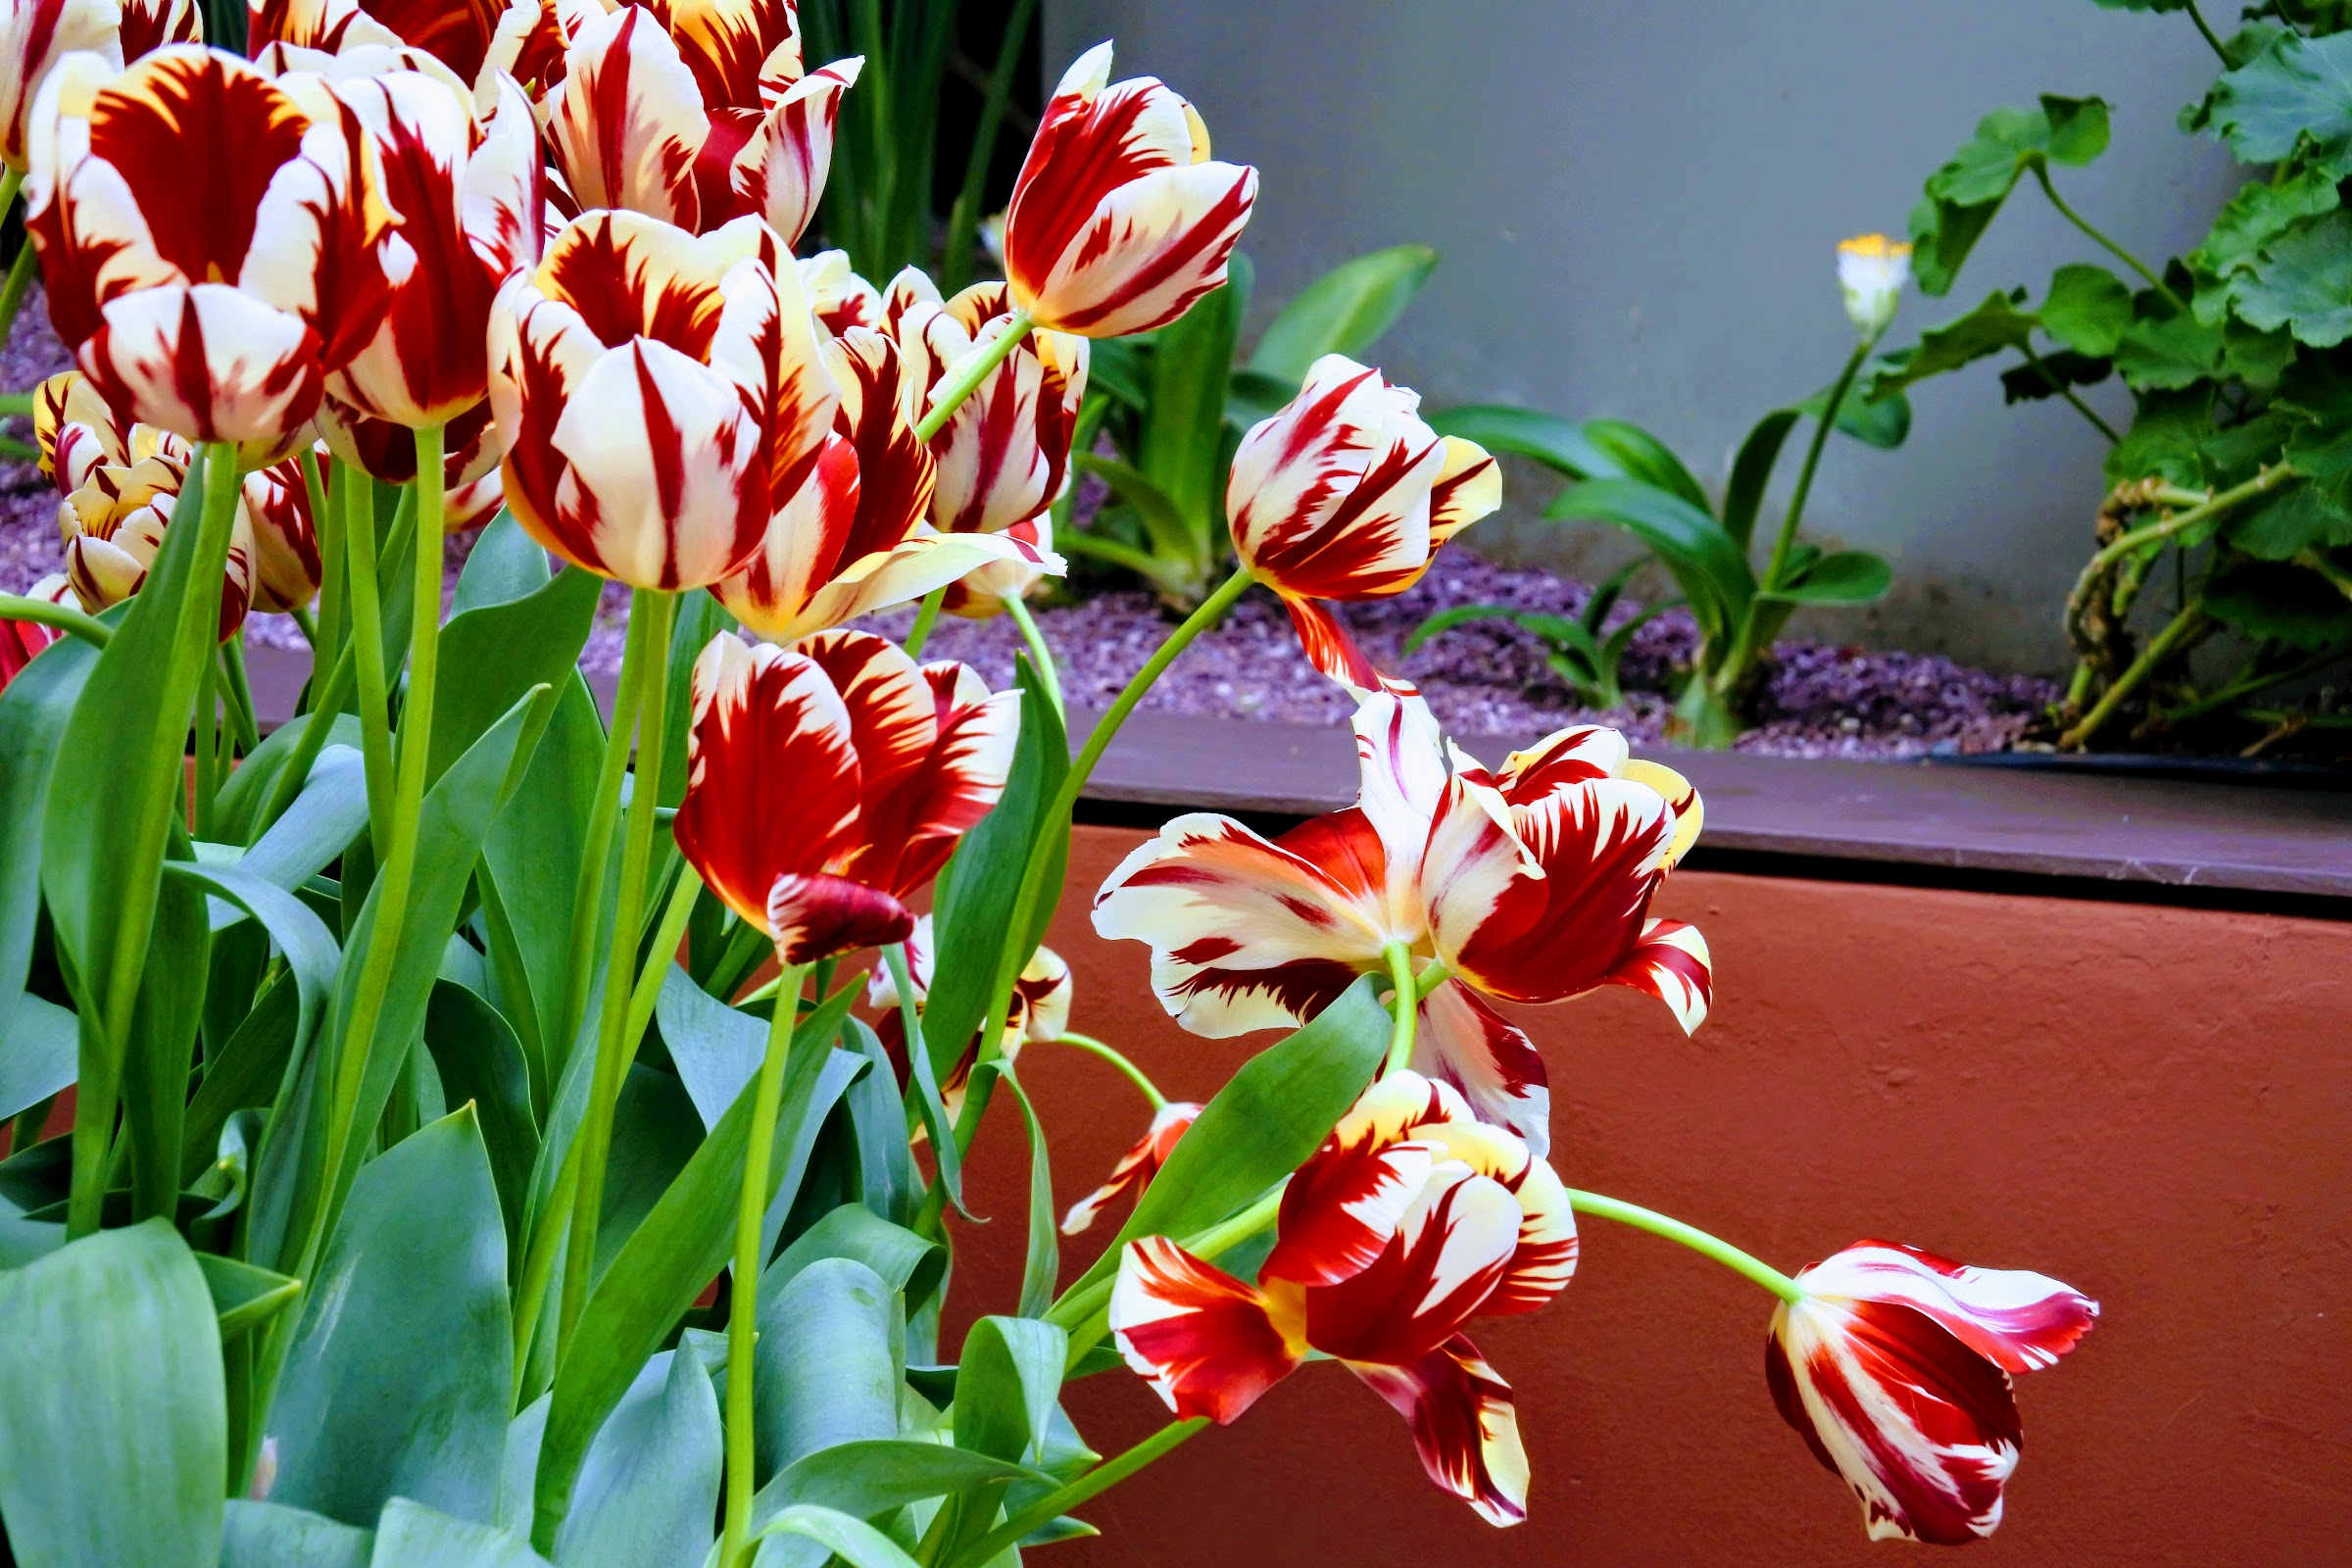 Tulips at Tulipmania